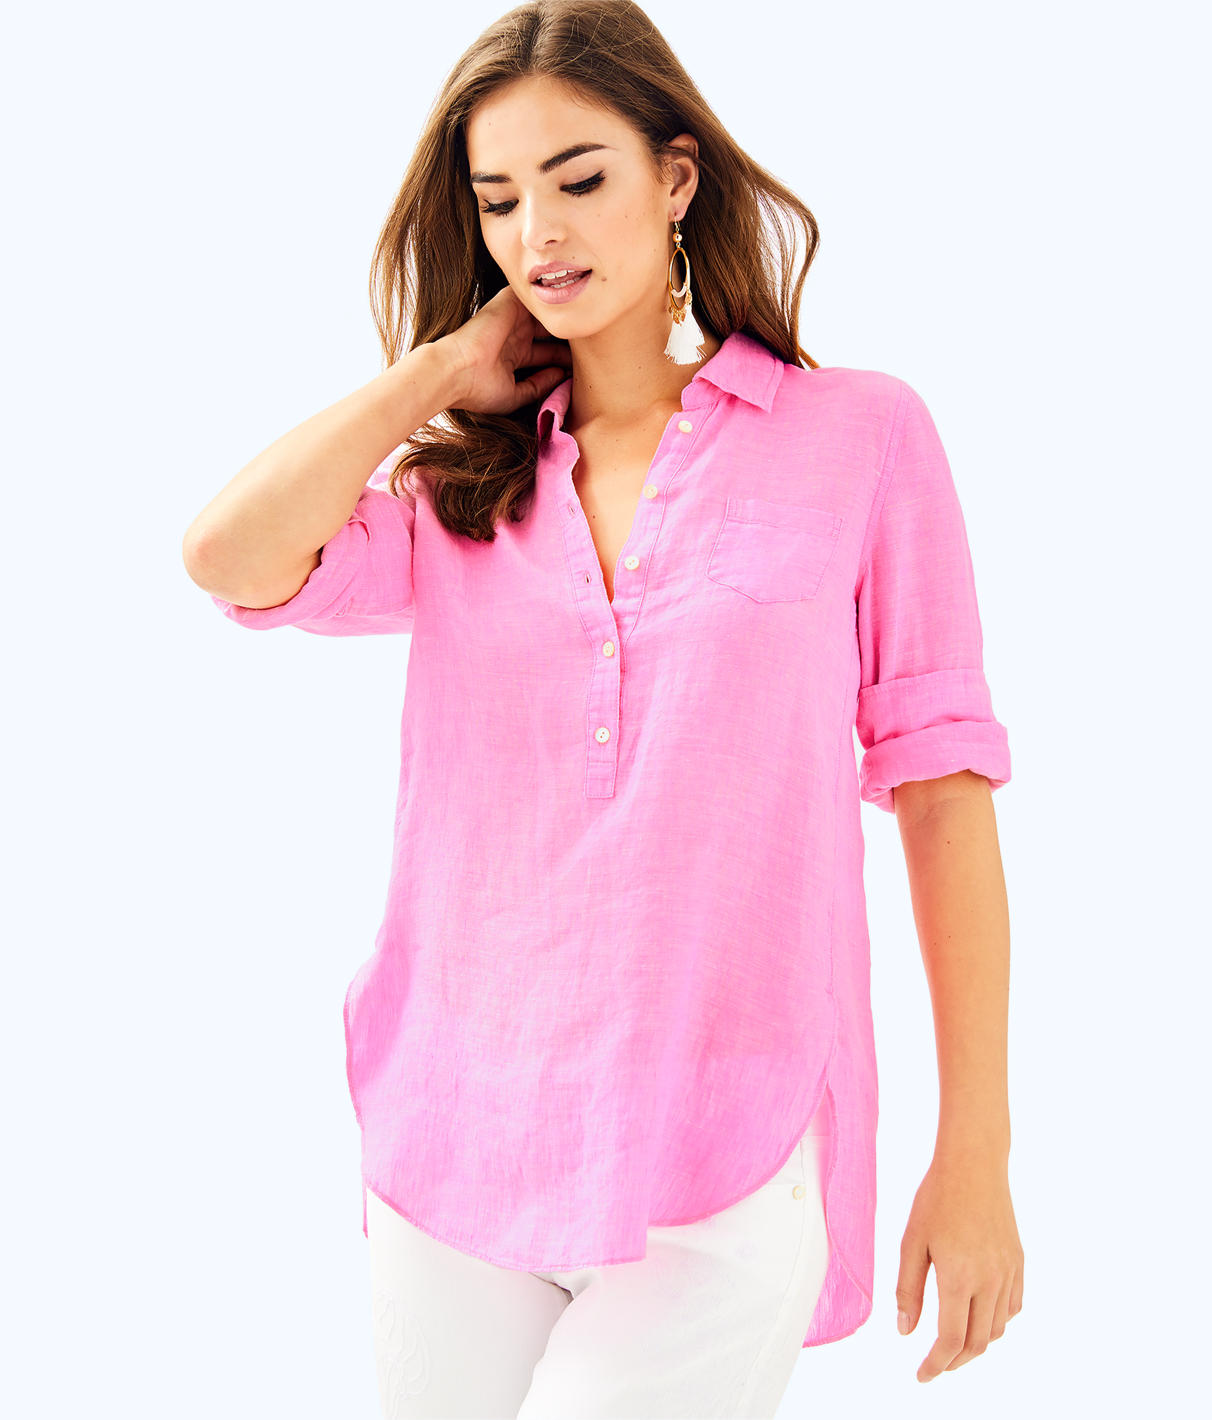 Lilly Pulitzer Lilly Pulitzer Womens Deanna Popover